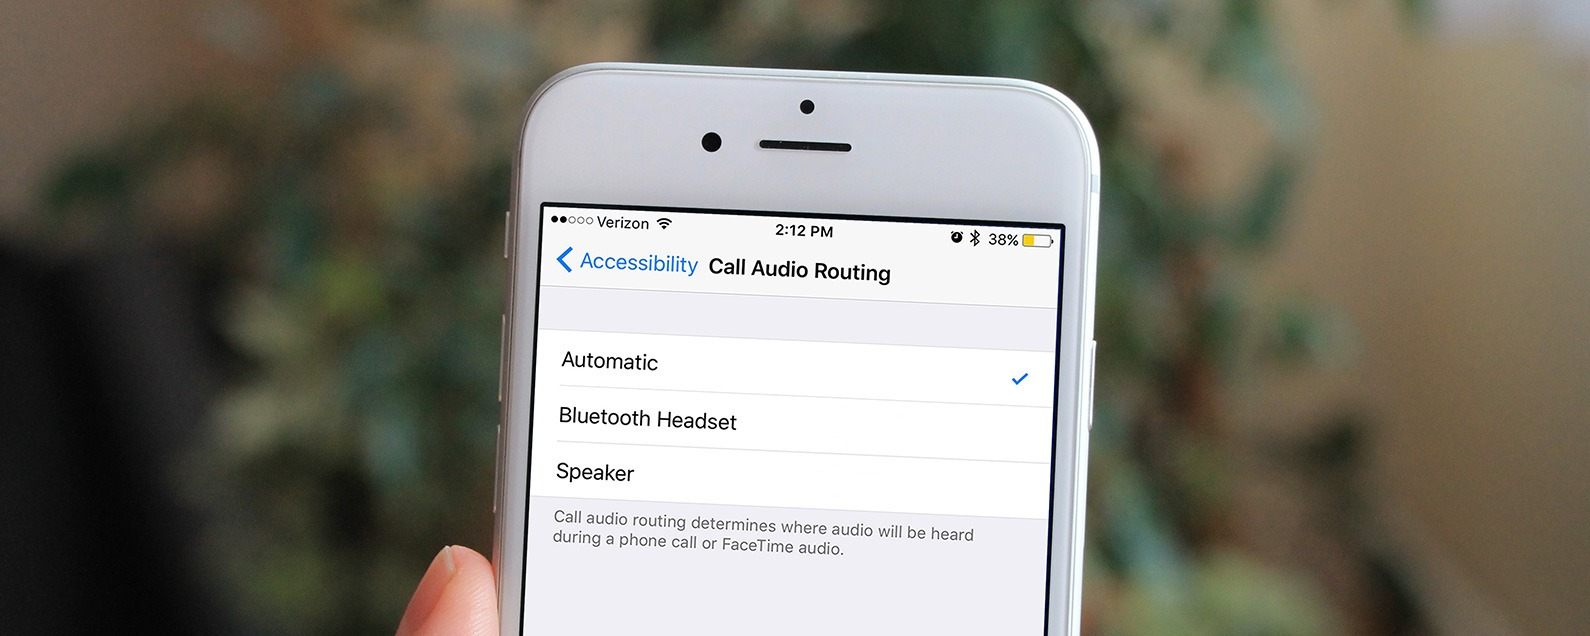 How can i hook up my iphone to my car speakers